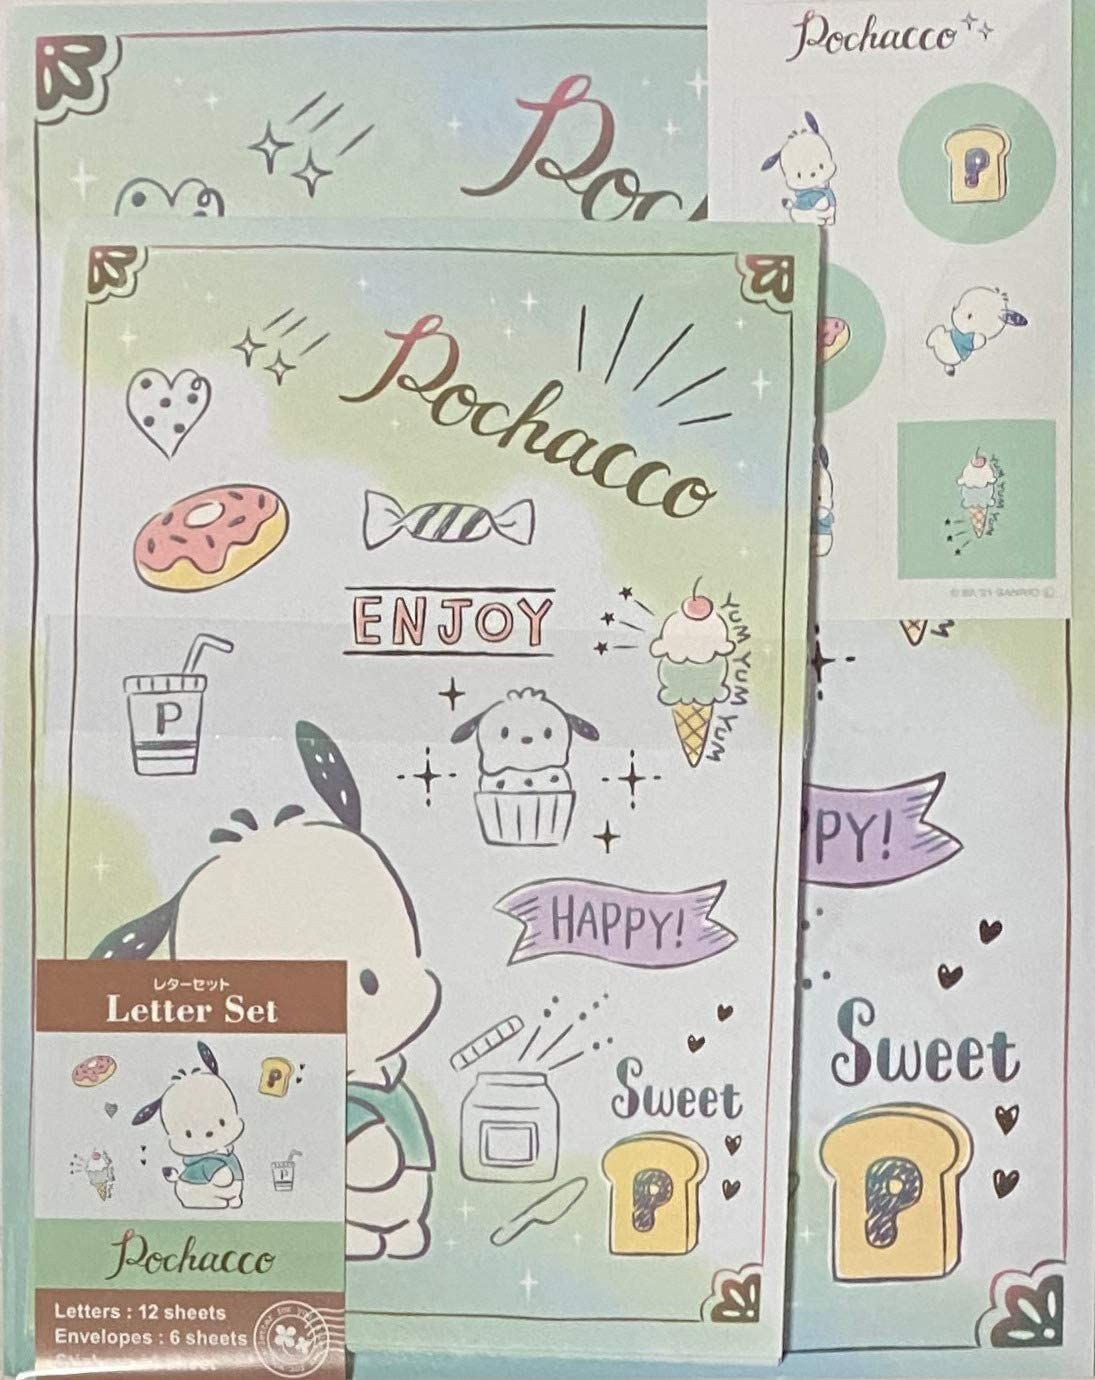 Sanrio Pochacco Letter Set 12 Writing Paper + 6 Envelopes + 7 Stickers Stationary Japan (Sweets)